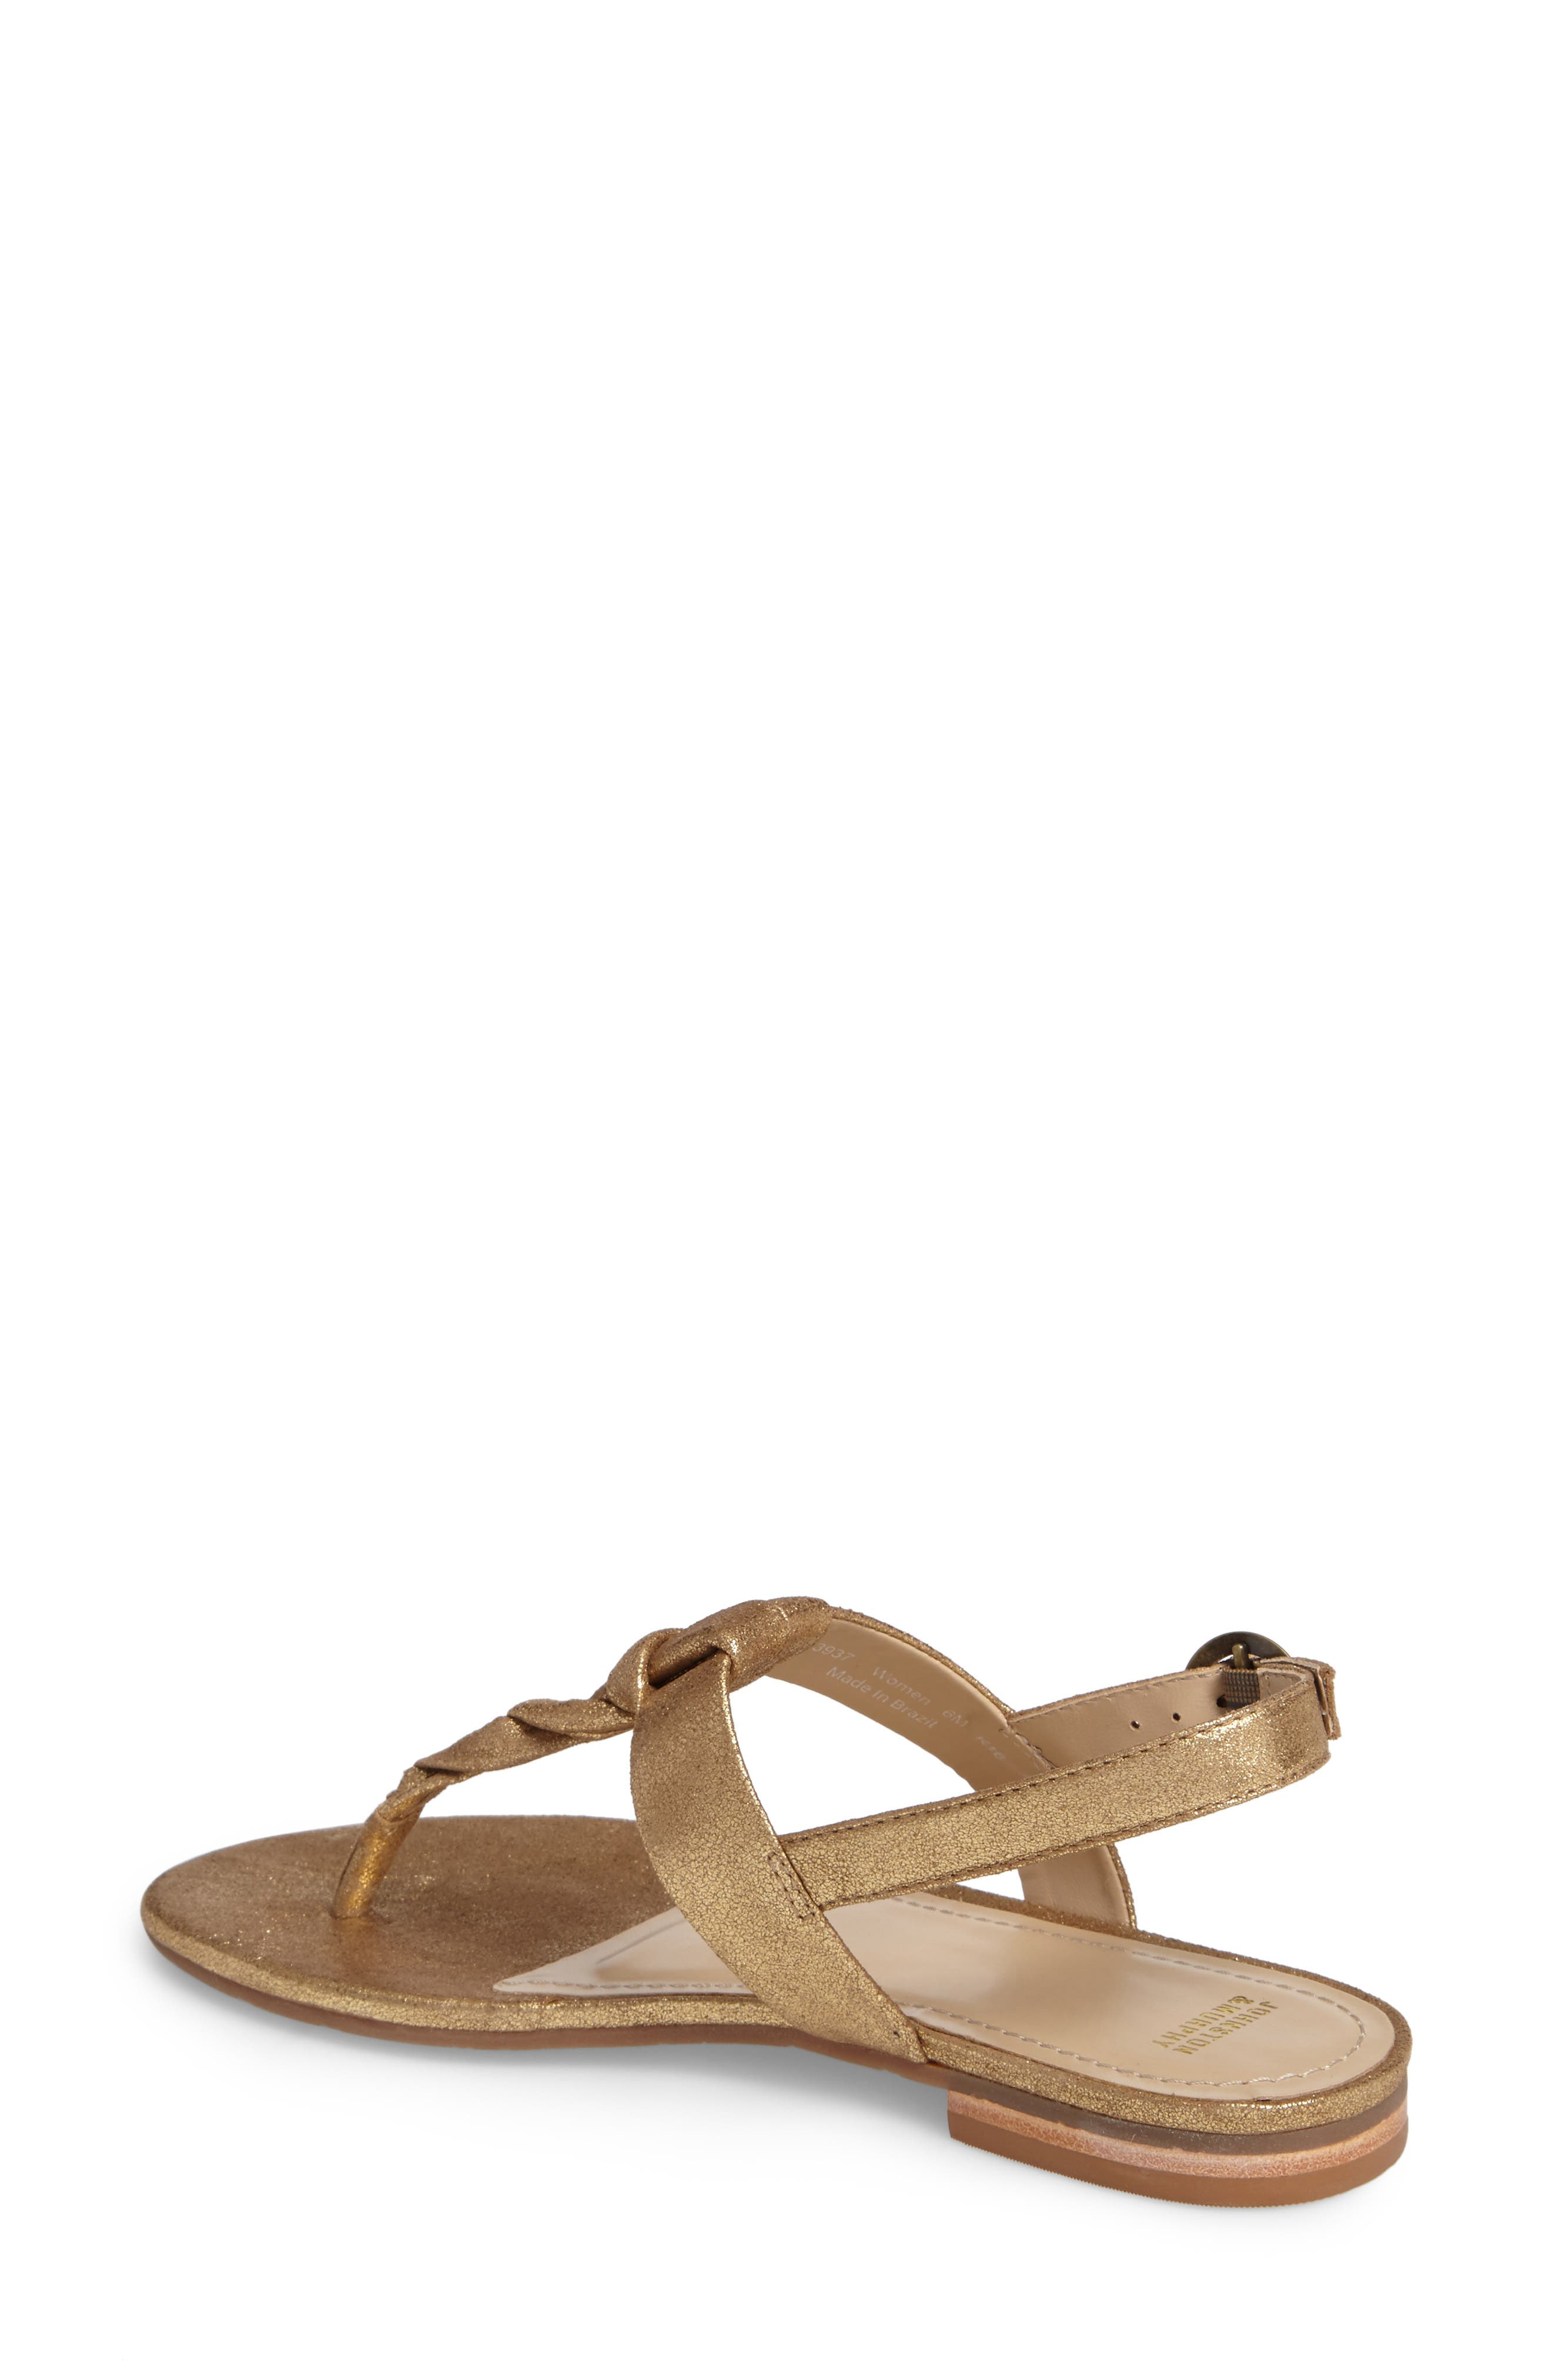 Holly Twisted T-Strap Sandal,                             Alternate thumbnail 10, color,